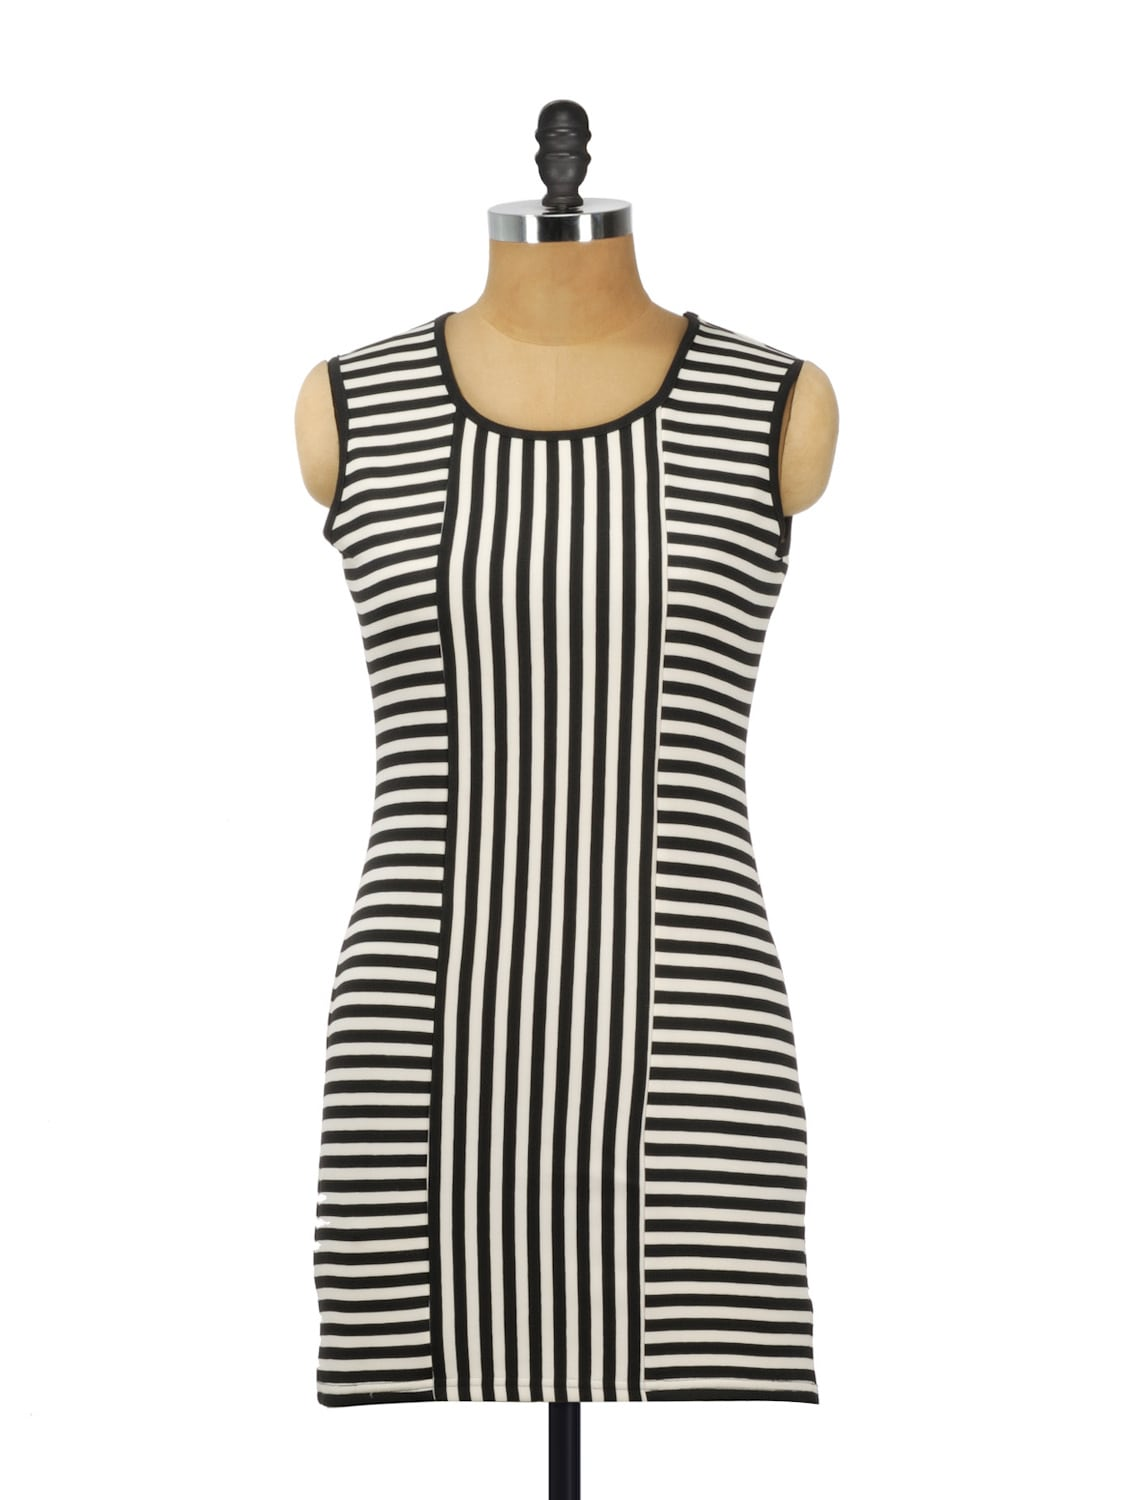 Black And White Striped Cotton Knit Dress - AKYRA